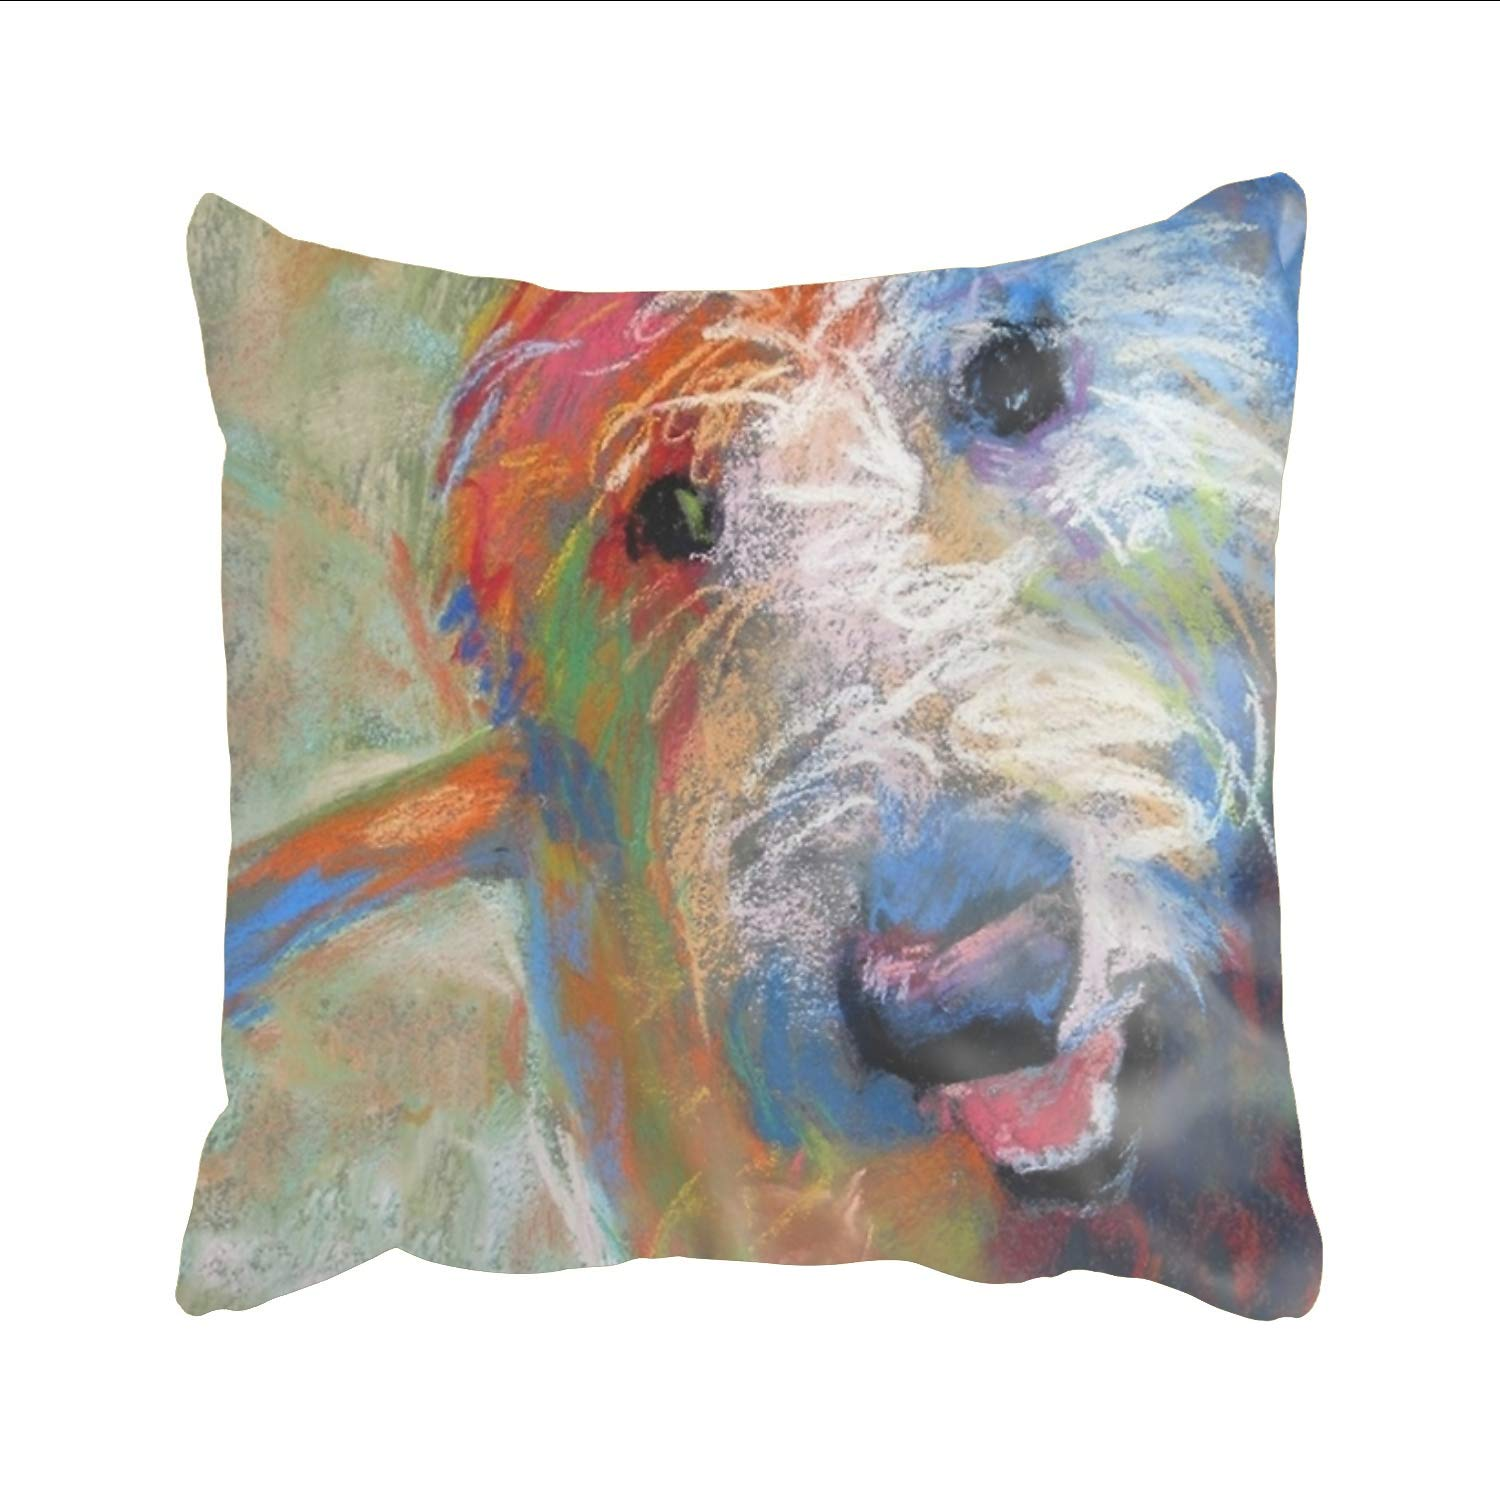 Prime Stahhn Decorative Throw Pillow Covers Couch Sofa Bed 16X16 Inches Modern Designs Blaze The Goldendoodle Dog Pillow Dailytribune Chair Design For Home Dailytribuneorg